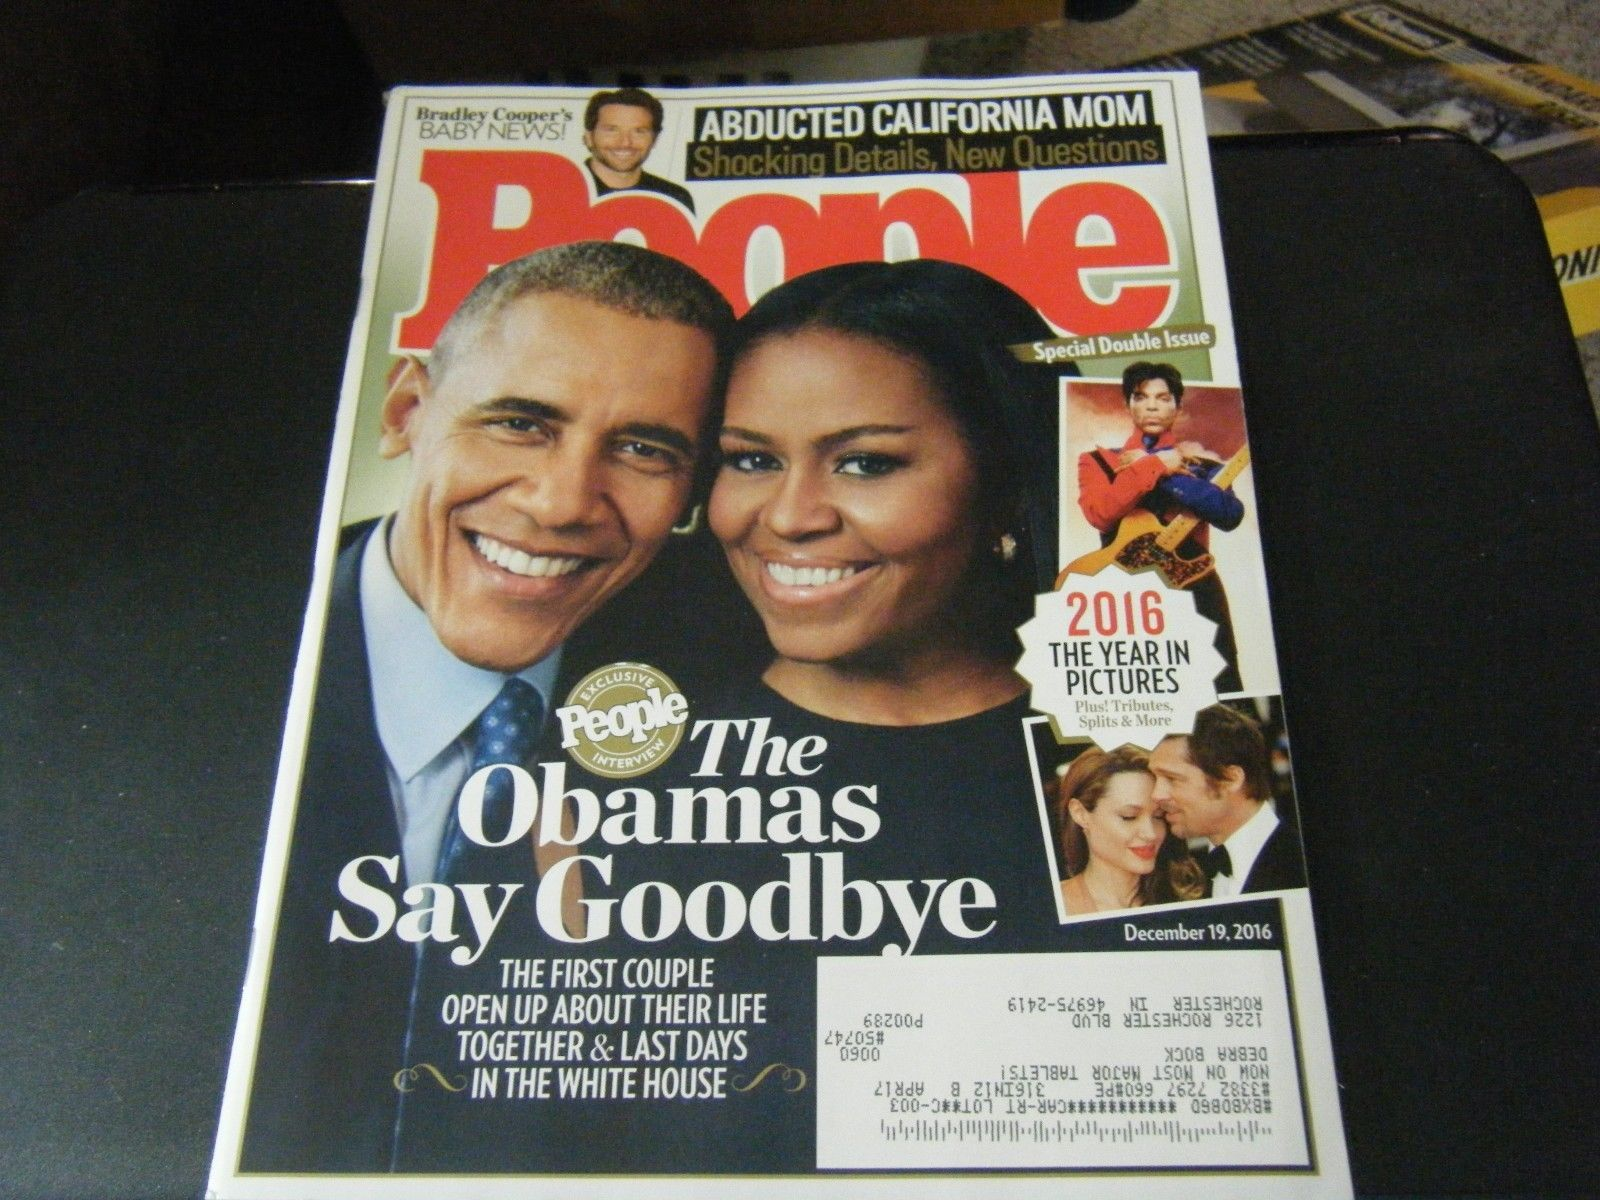 People Magazine - The Obamas Say Goodbye Cover - December 19, 2016